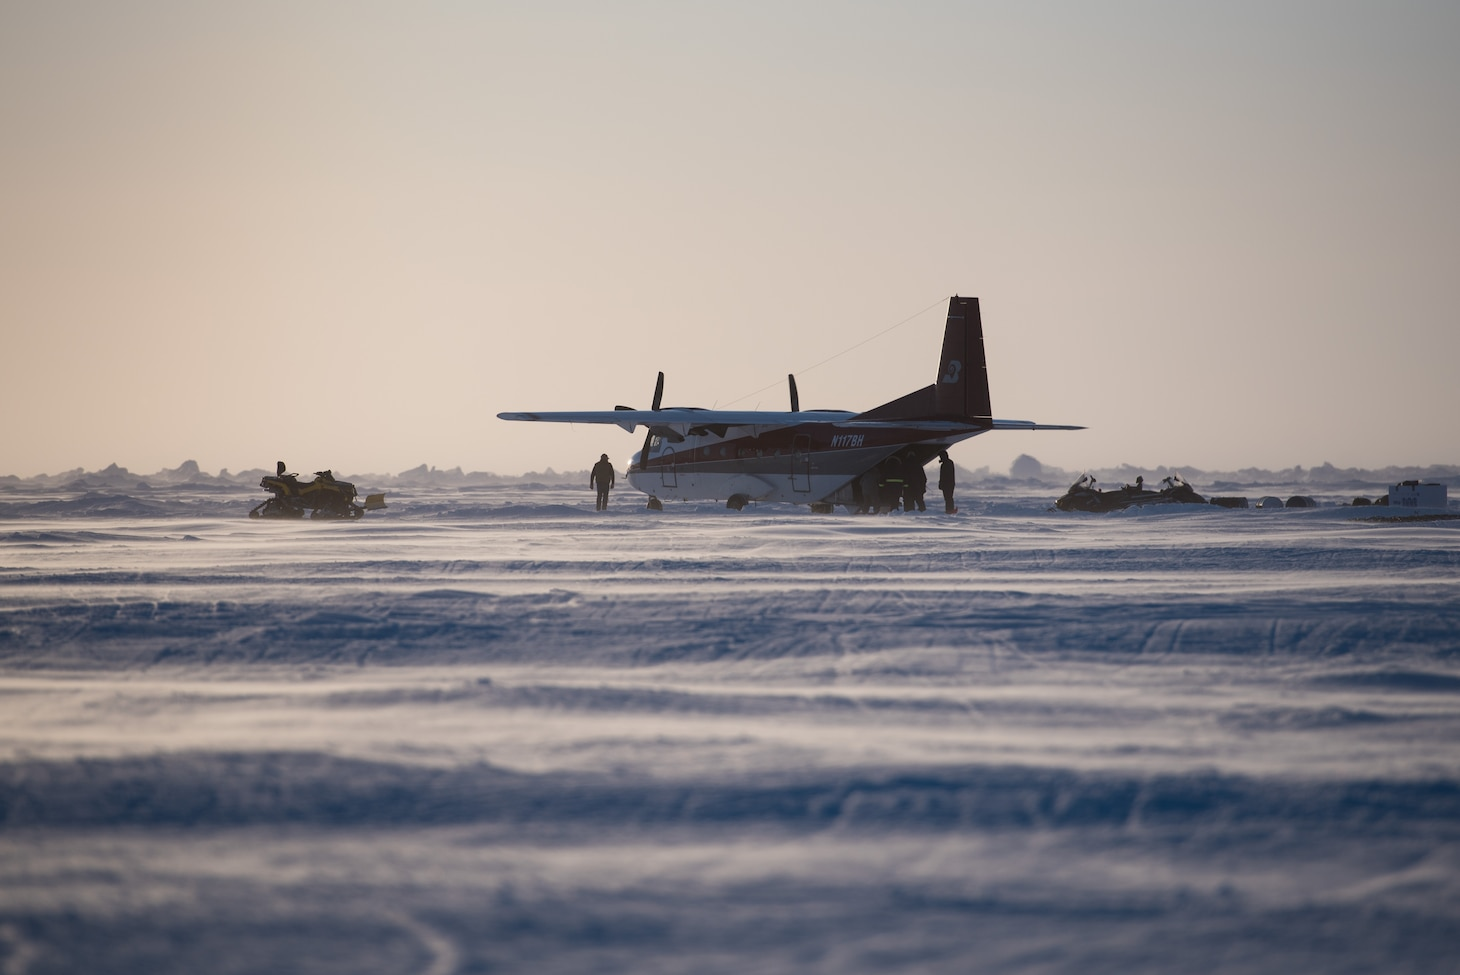 Members of Ice Camp Skate load cargo into a plane March 9, 2018 in support of Ice Exercise (ICEX) 2018. ICEX 2018 is a five-week exercise that allows the Navy to assess its operational readiness in the Arctic, increase experience in the region, advance understanding of the Arctic environment, and continue to develop relationships with other services, allies and partner organizations. (U.S. Navy photo by Mass Communication 2nd Class Micheal H. Lee)